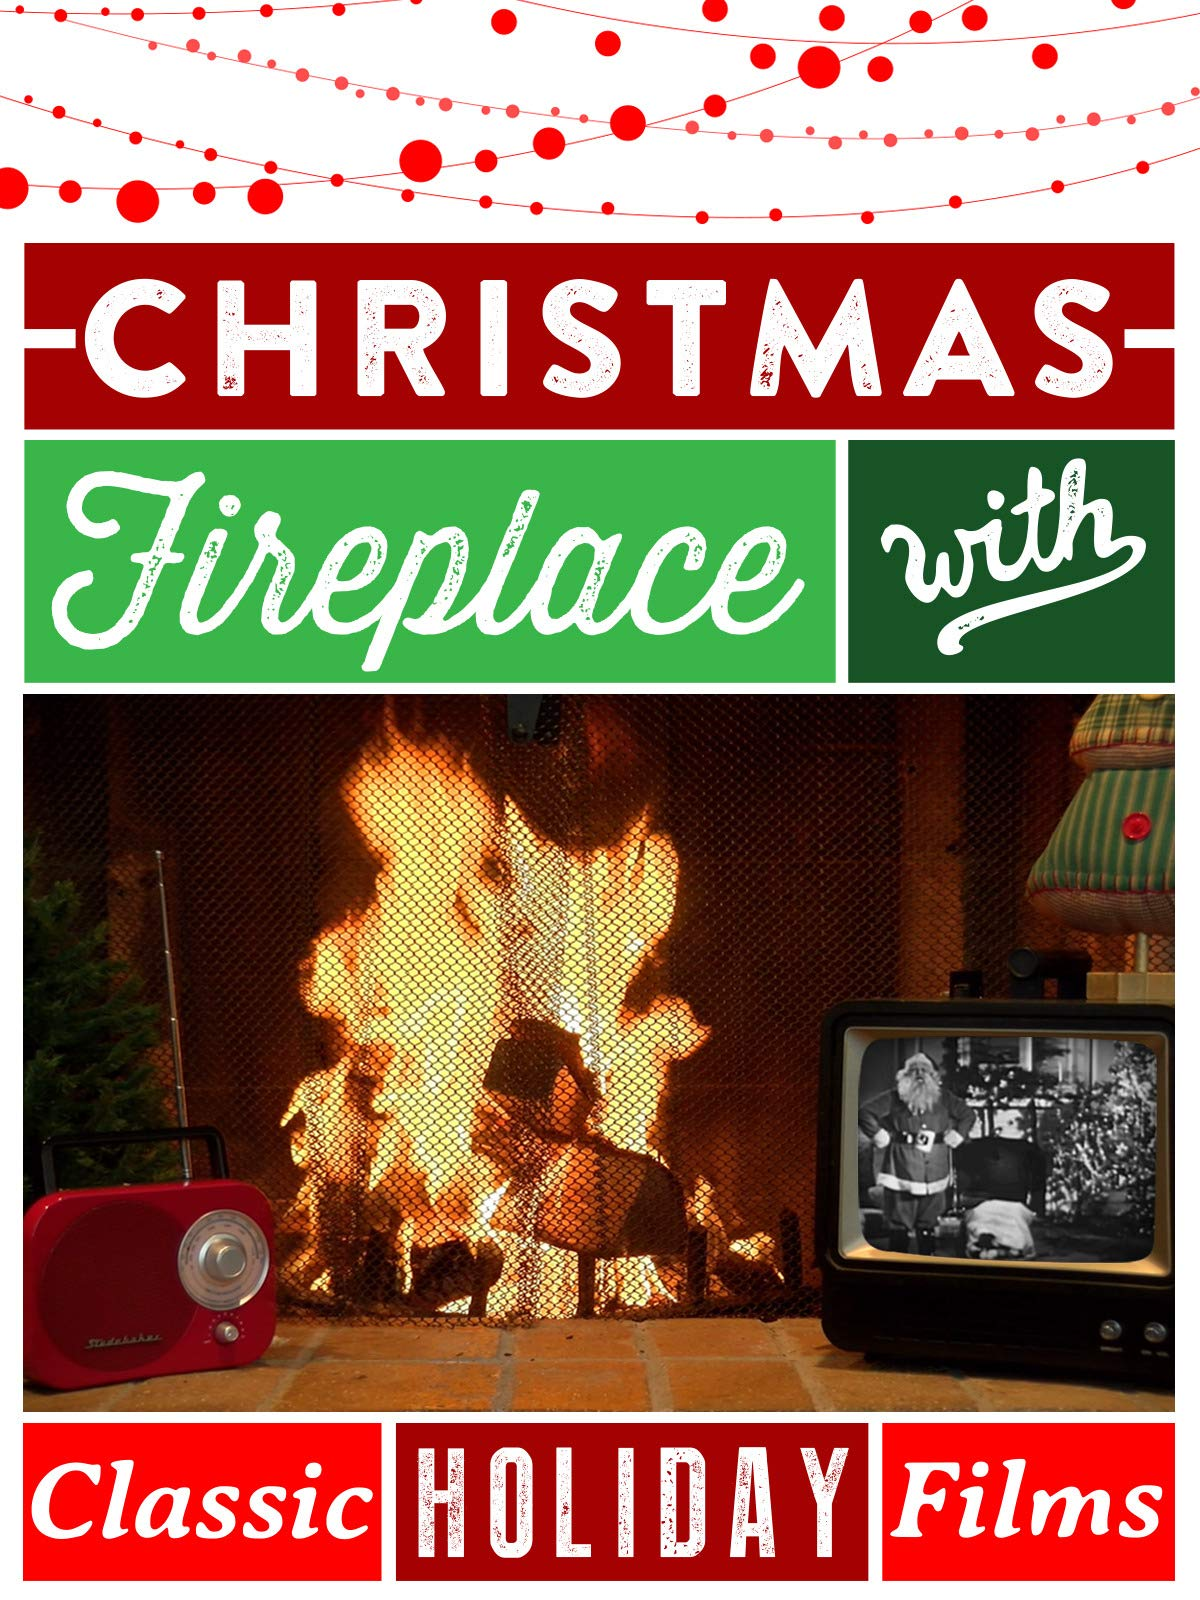 Christmas Fireplace - With Classic Holiday Films!